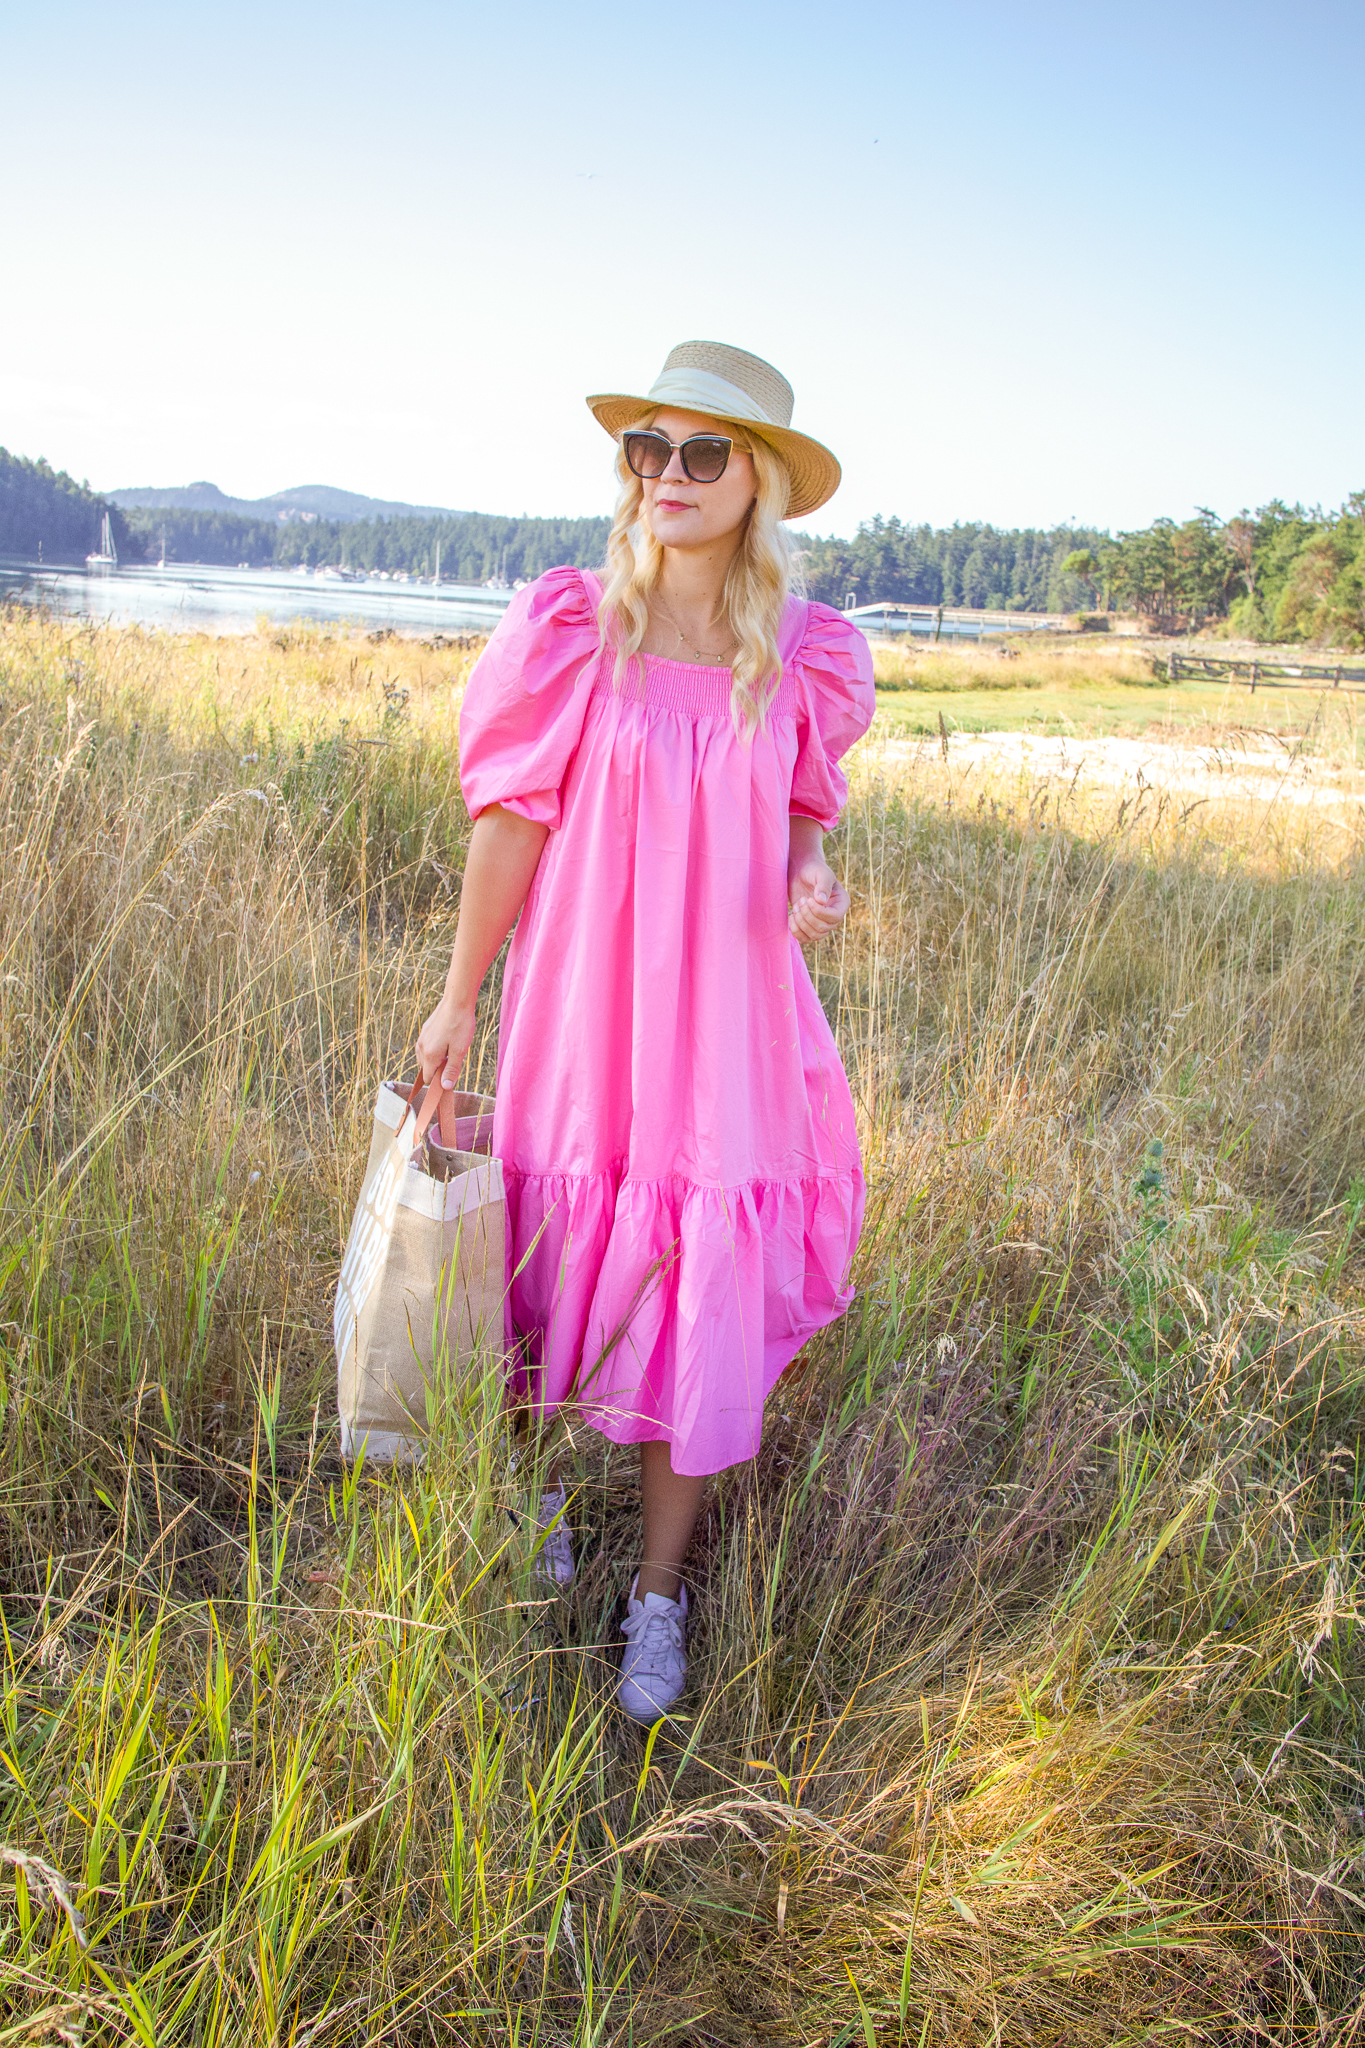 H&M Dress by popular Seattle fashion blog, Whit Wanders: image of a woman walking outside on San Juan island and wearing a H&M pink puff-sleeved dress, straw boater hat, and cat eye sunglasses.